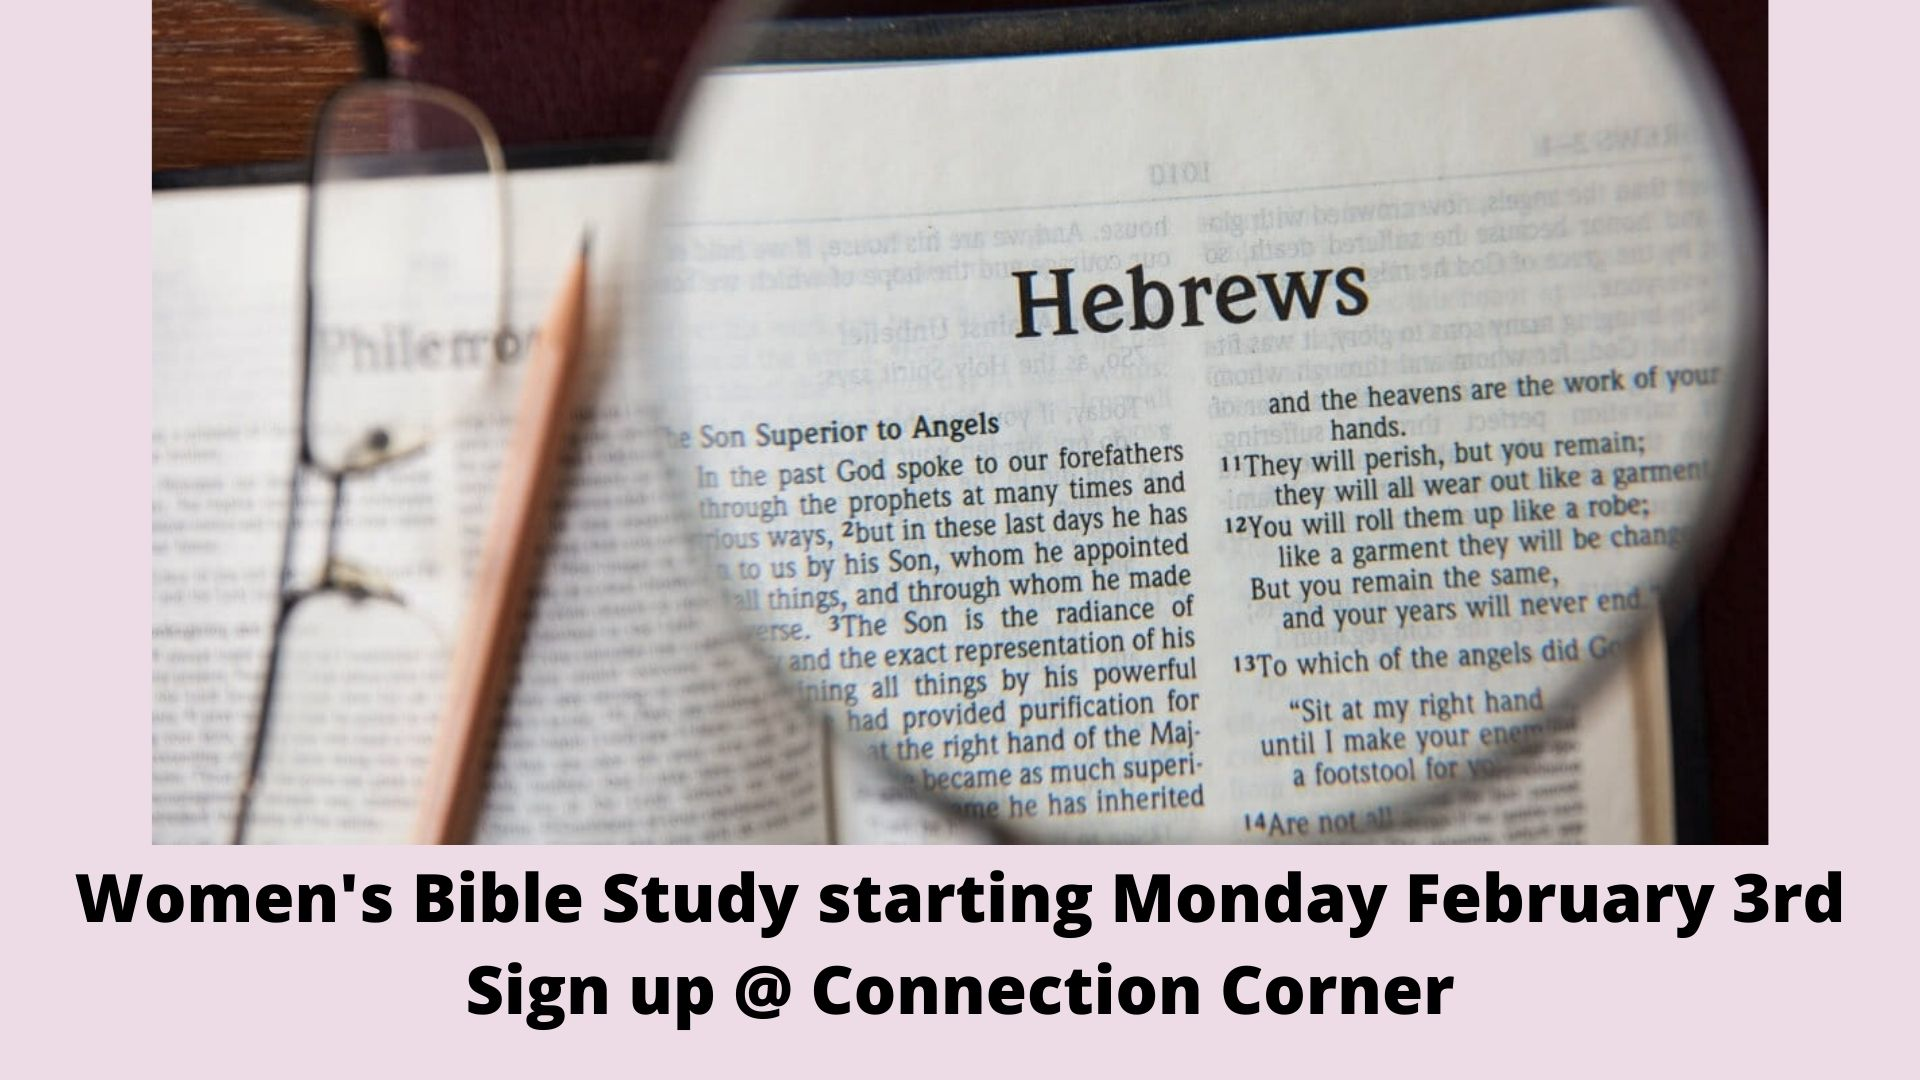 Women's Bible Study starting Monday February 3rd Sign up @ Connection Corner